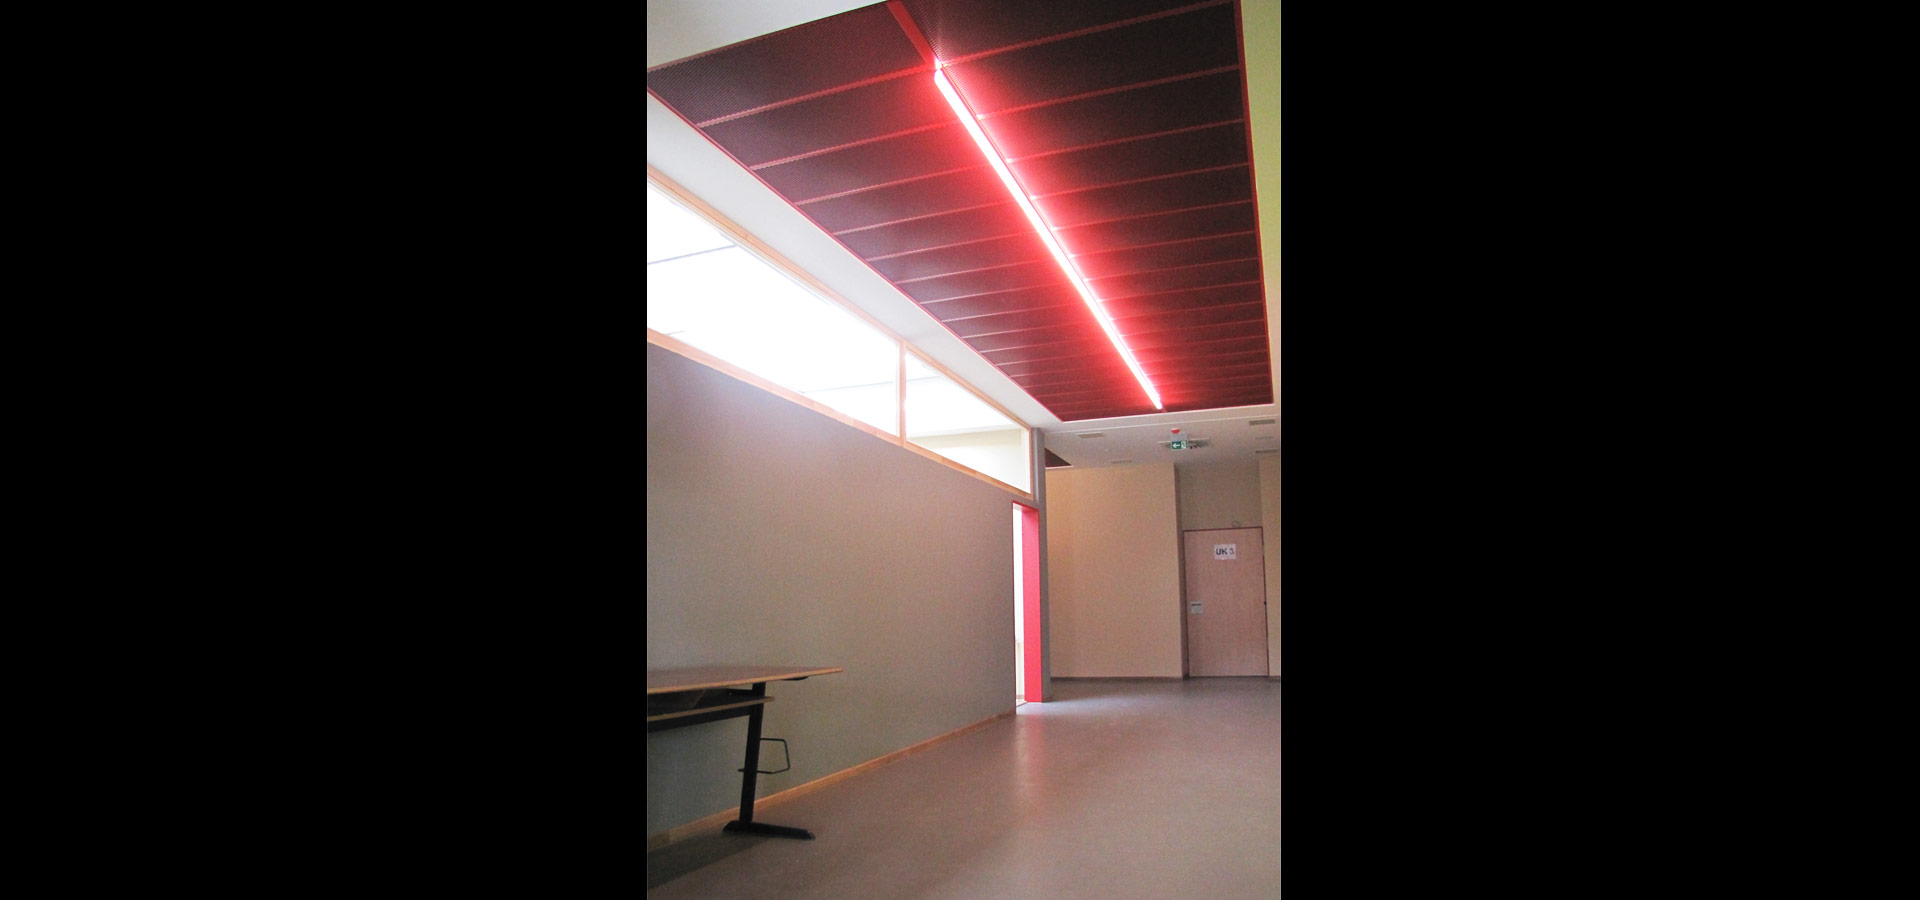 Luxsystem luminaire light line with emergency lighting